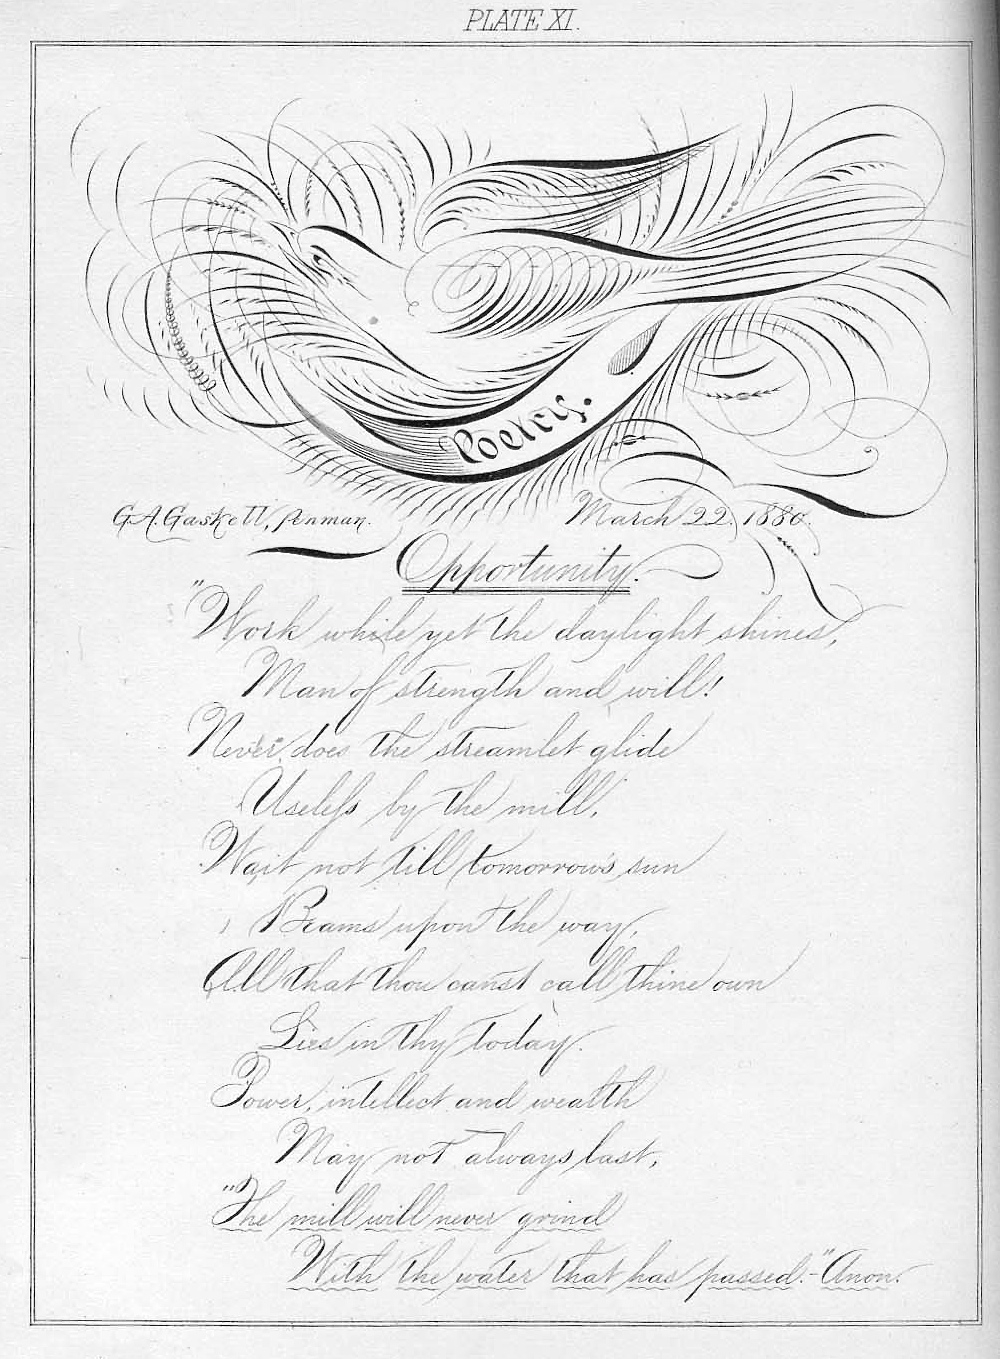 Tenth Letter of the Alphabet: Creator: Professor G.A. Gaskell